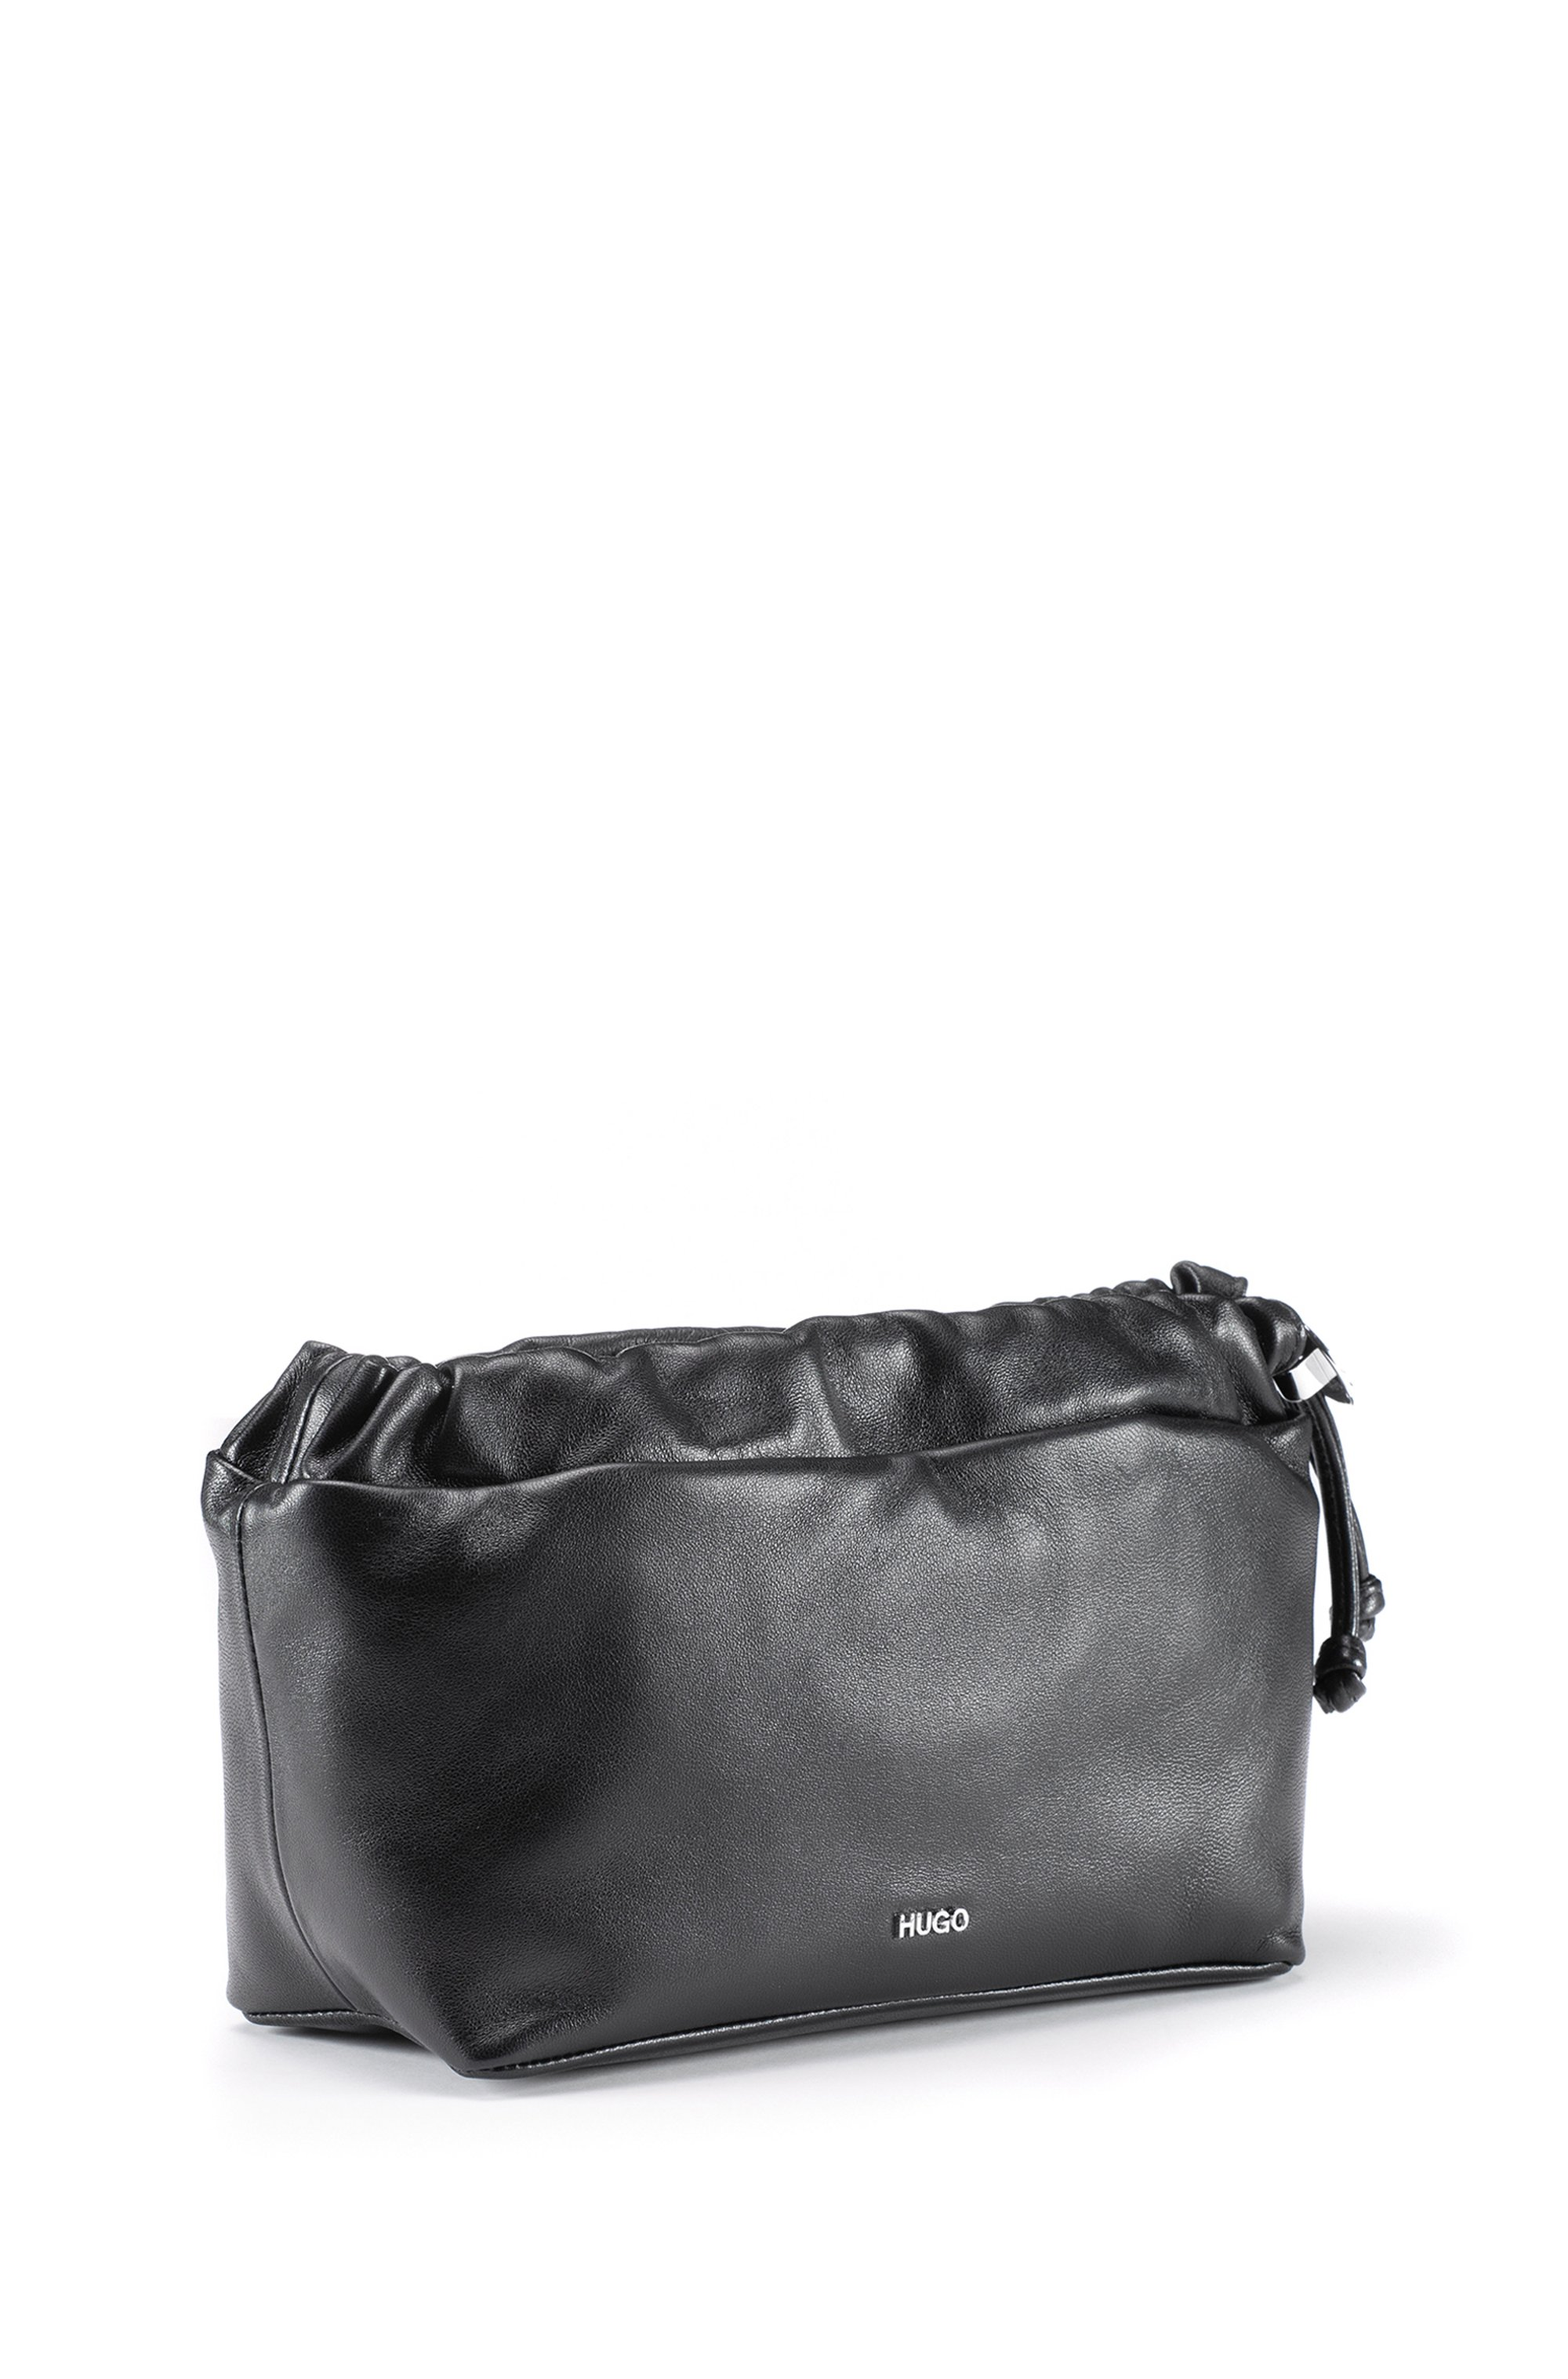 Cross-body bag in nappa leather with drawstring closure